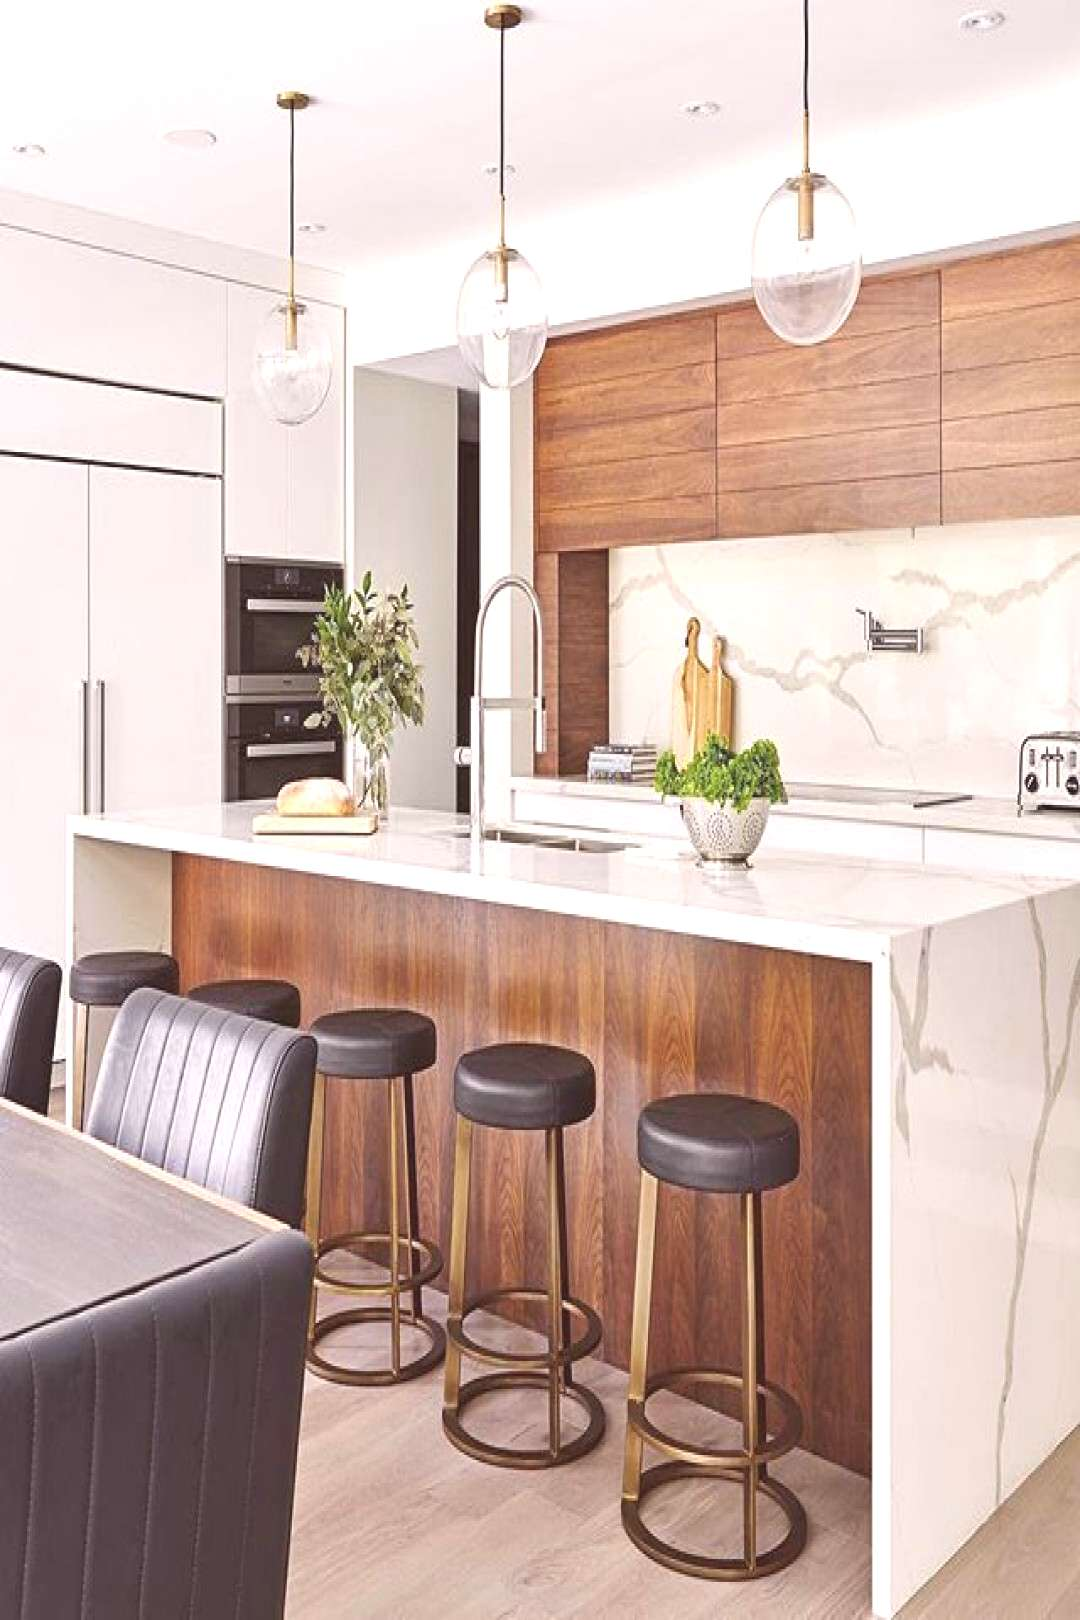 Phenomenal Modern Trends Interior Designs Ideas Home Remodeling Modern Find other ideas Kitchen Co